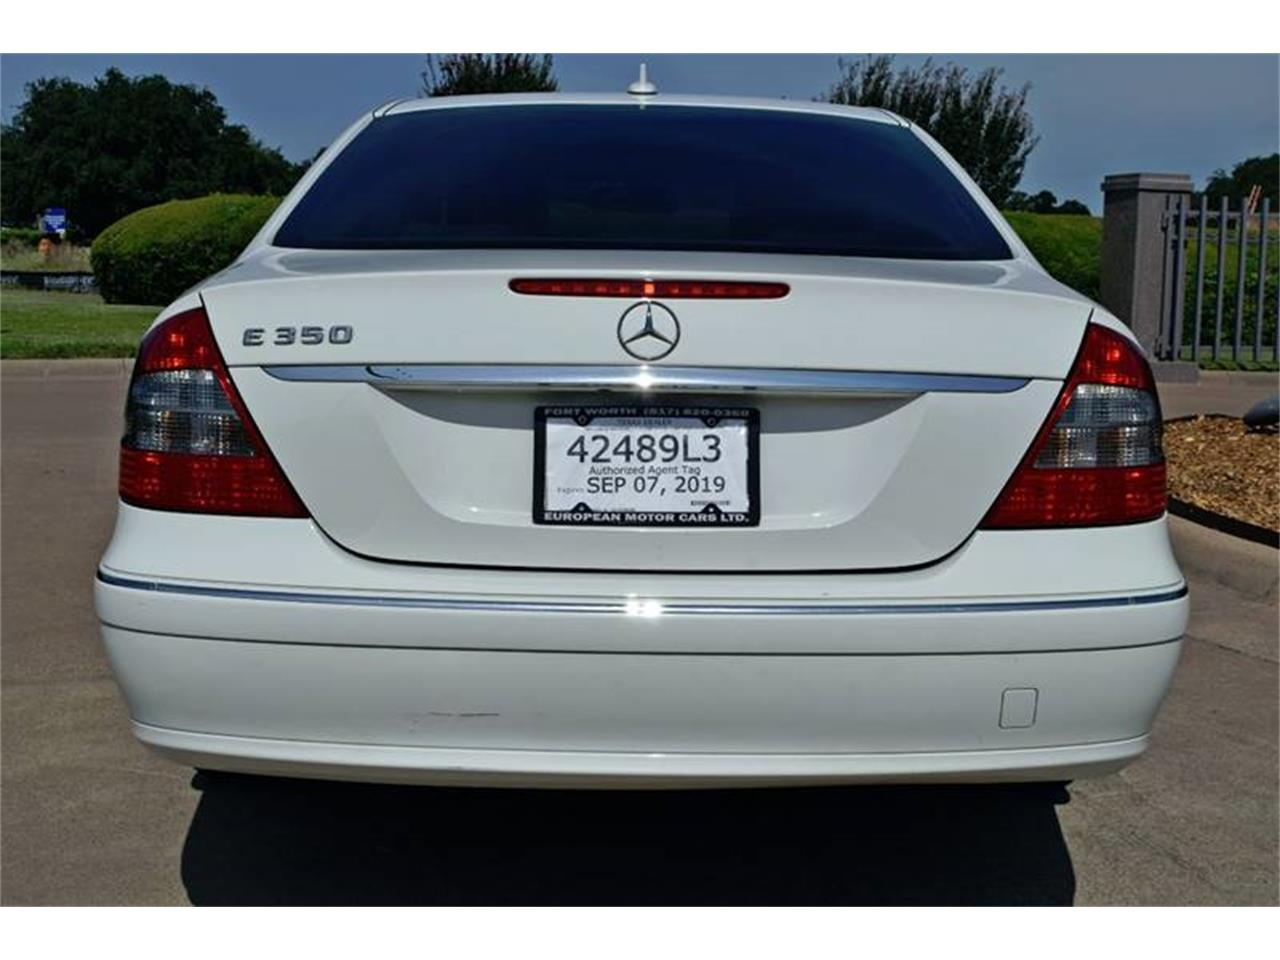 2009 Mercedes-Benz E-Class for sale in Fort Worth, TX – photo 6